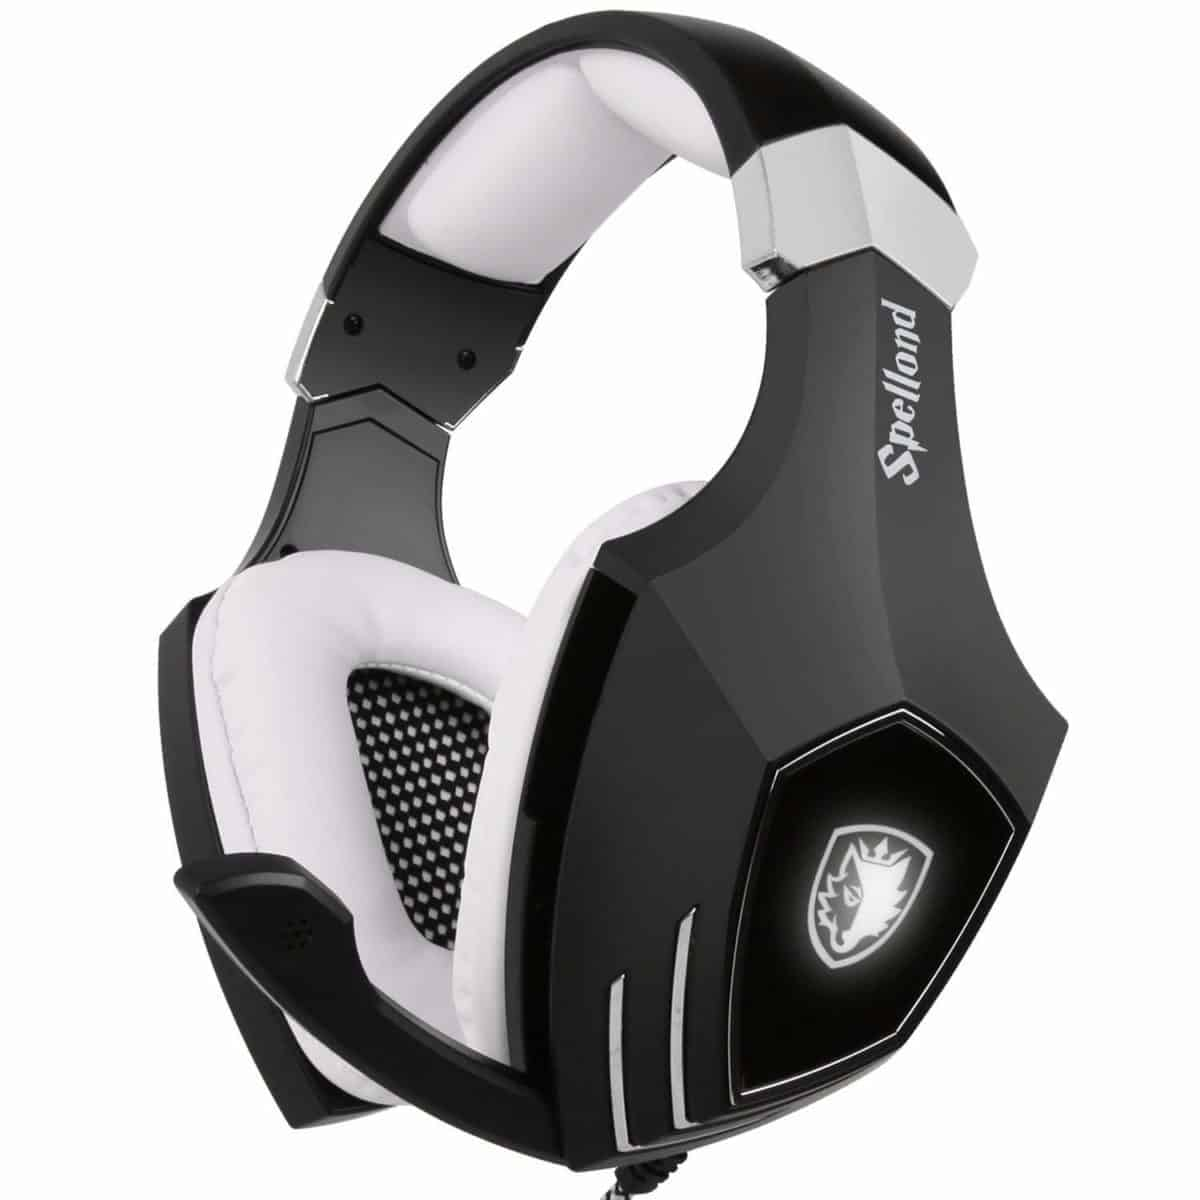 5 Best Budget Gaming Headsets Under $50 For PC, Xbox & PS4 (2019)